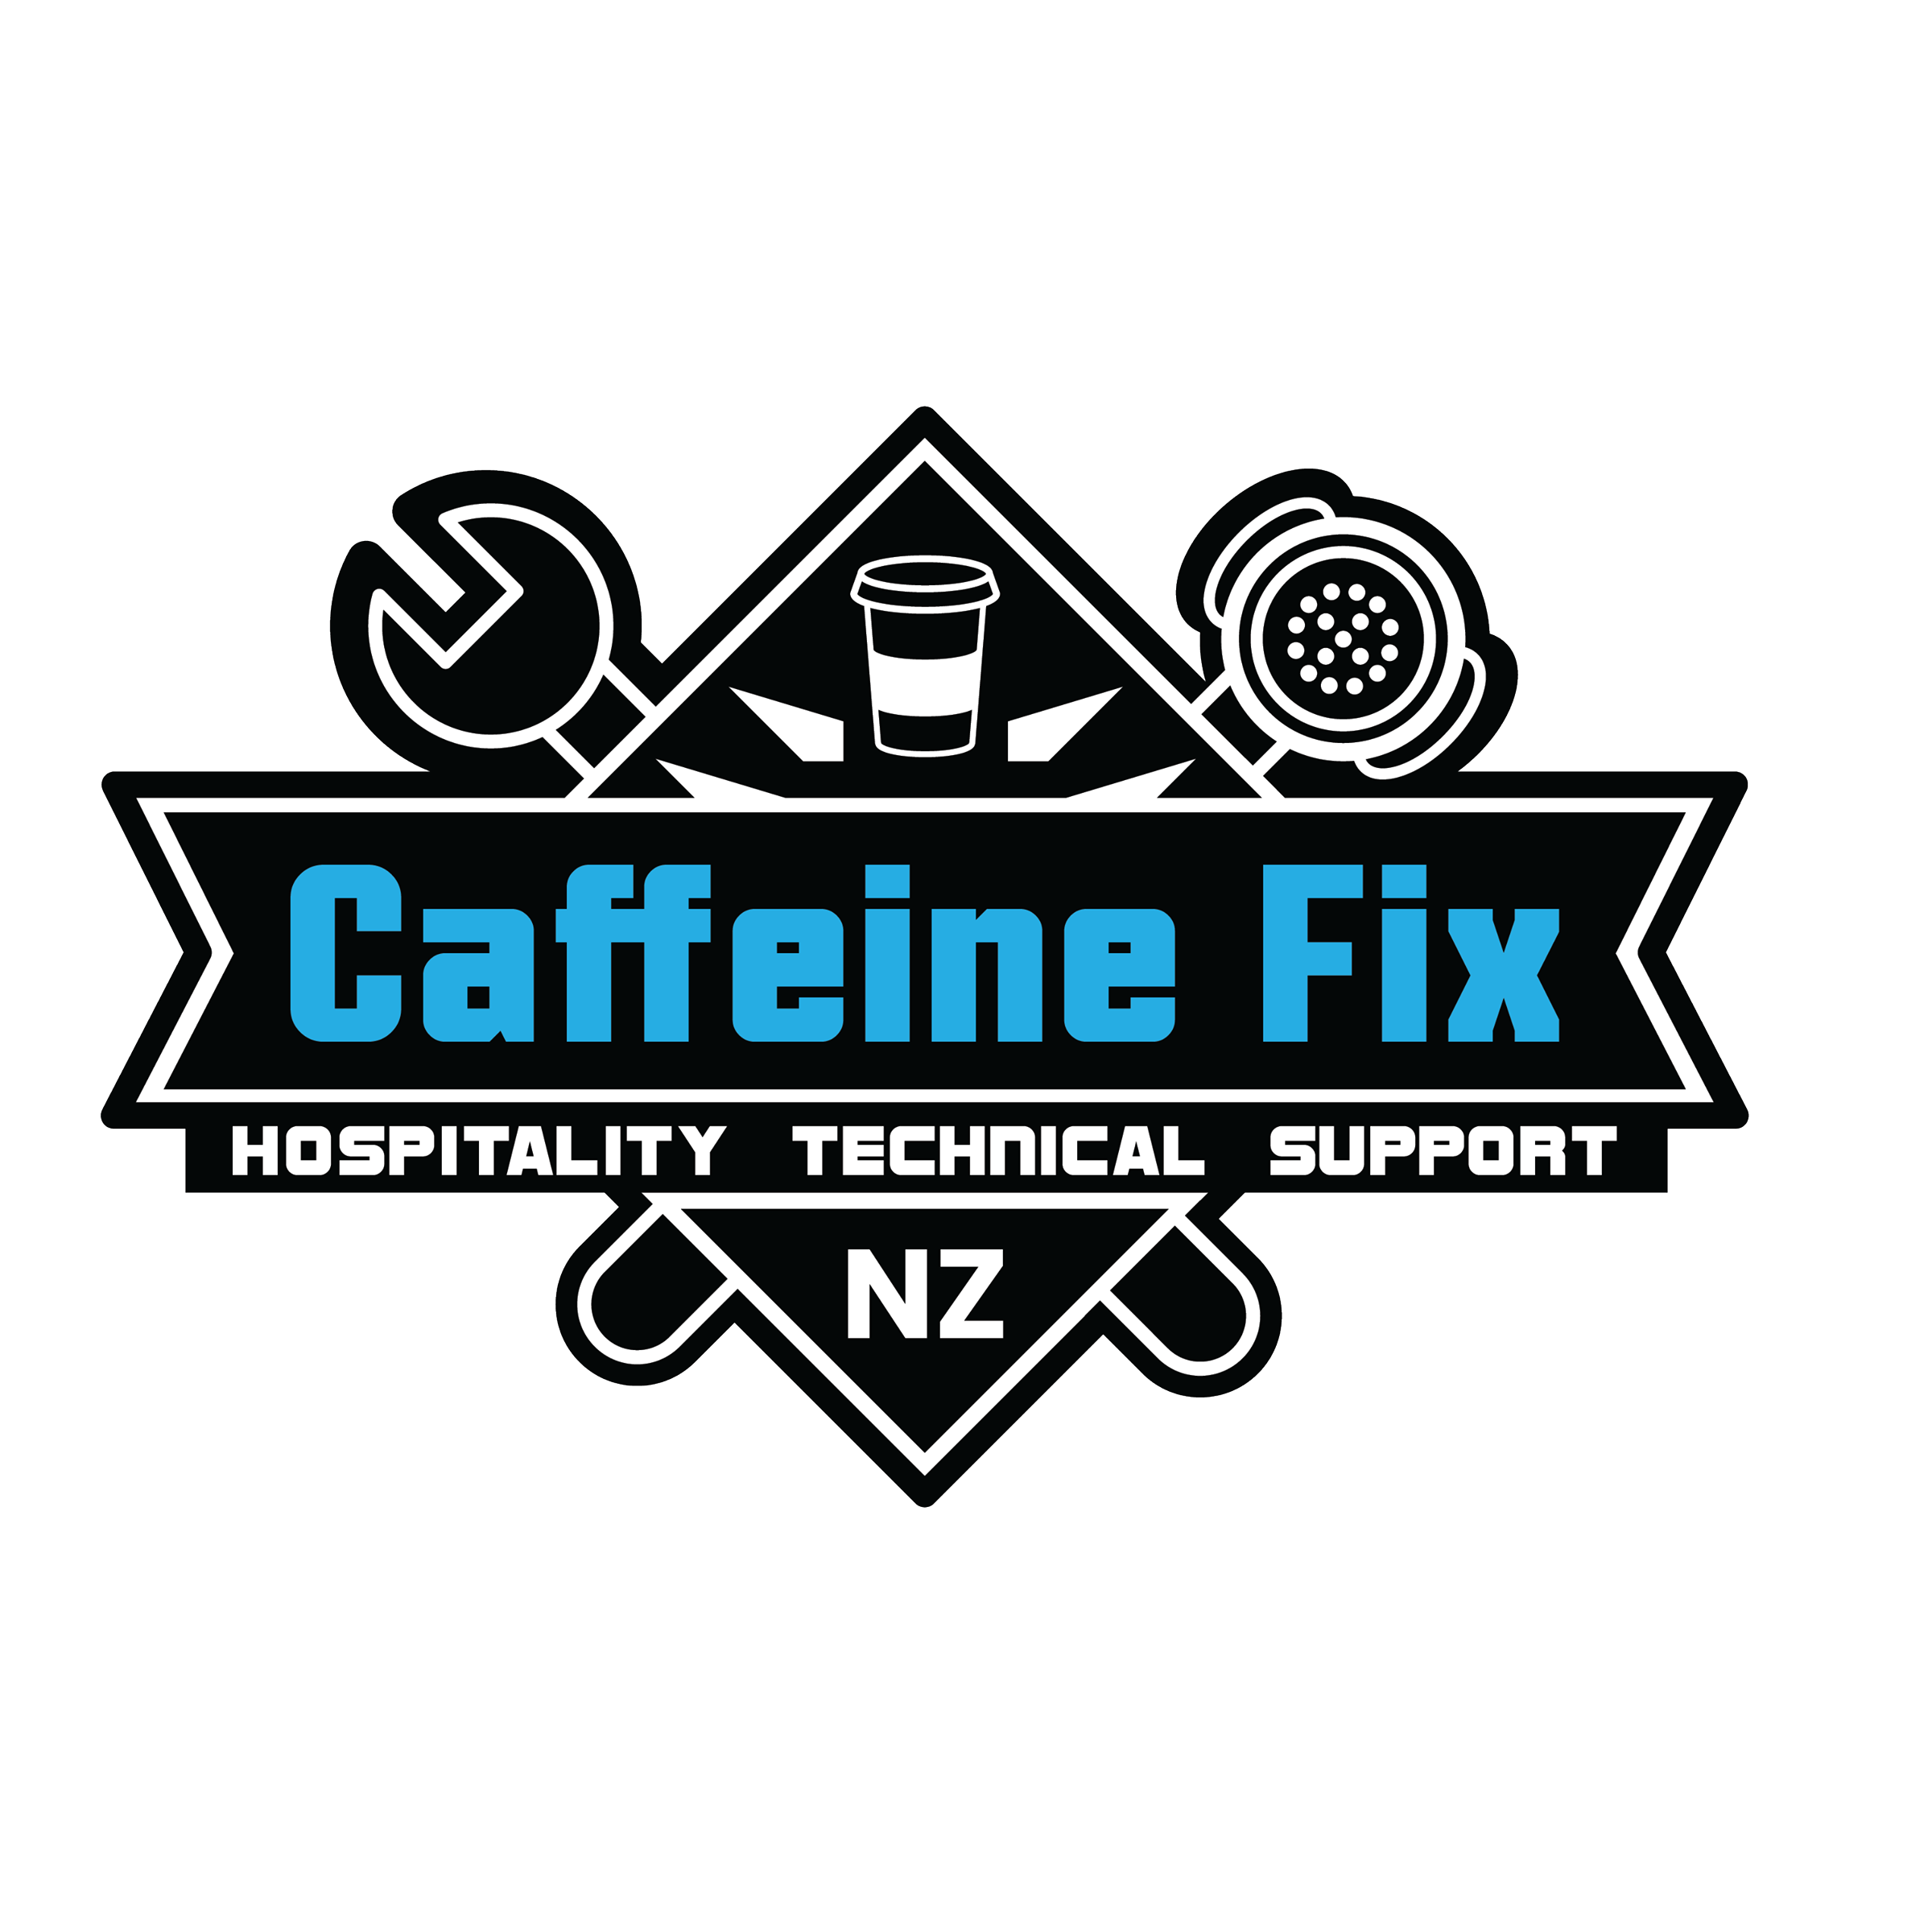 Caffeine Fix - Hospitality Technical Support